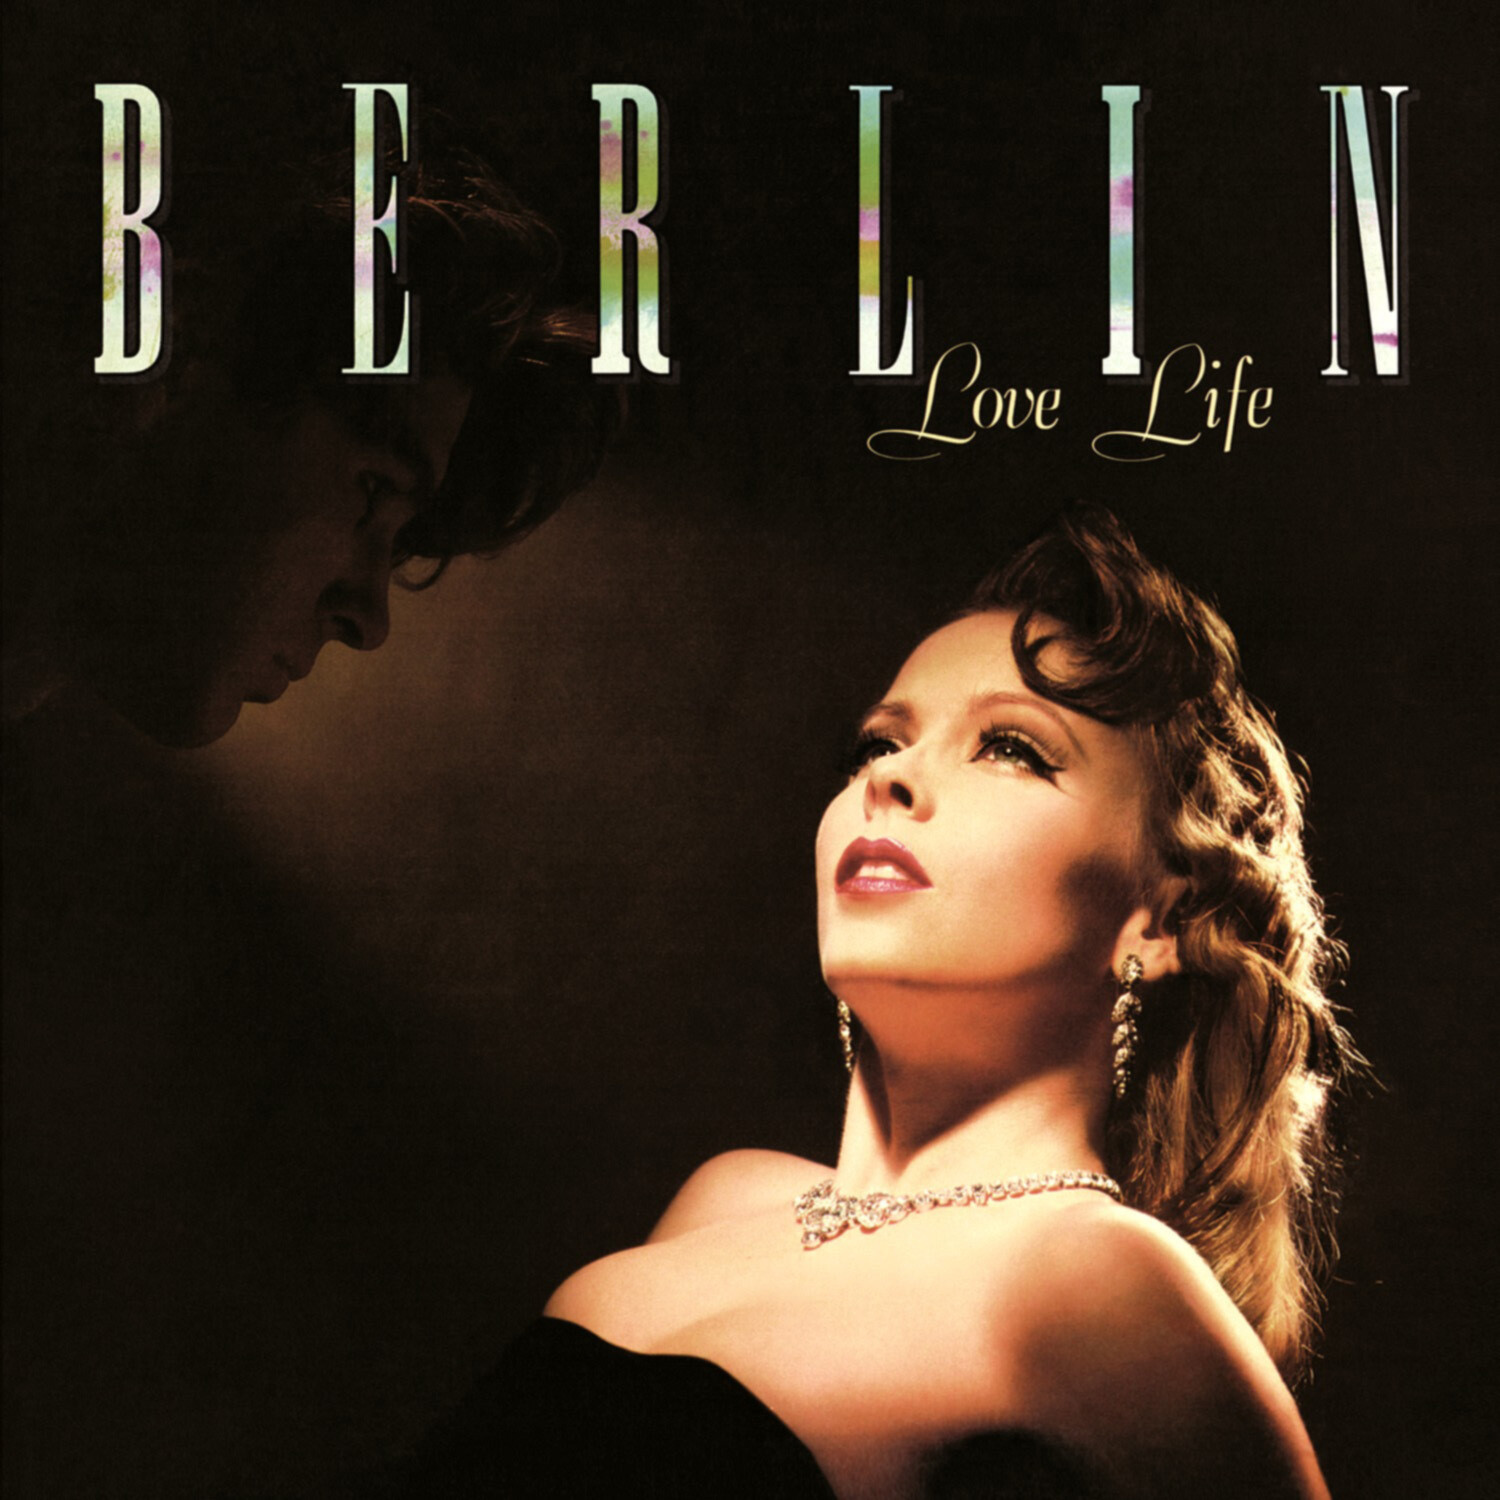 Berlin / Love Life CD (Expanded Edition)